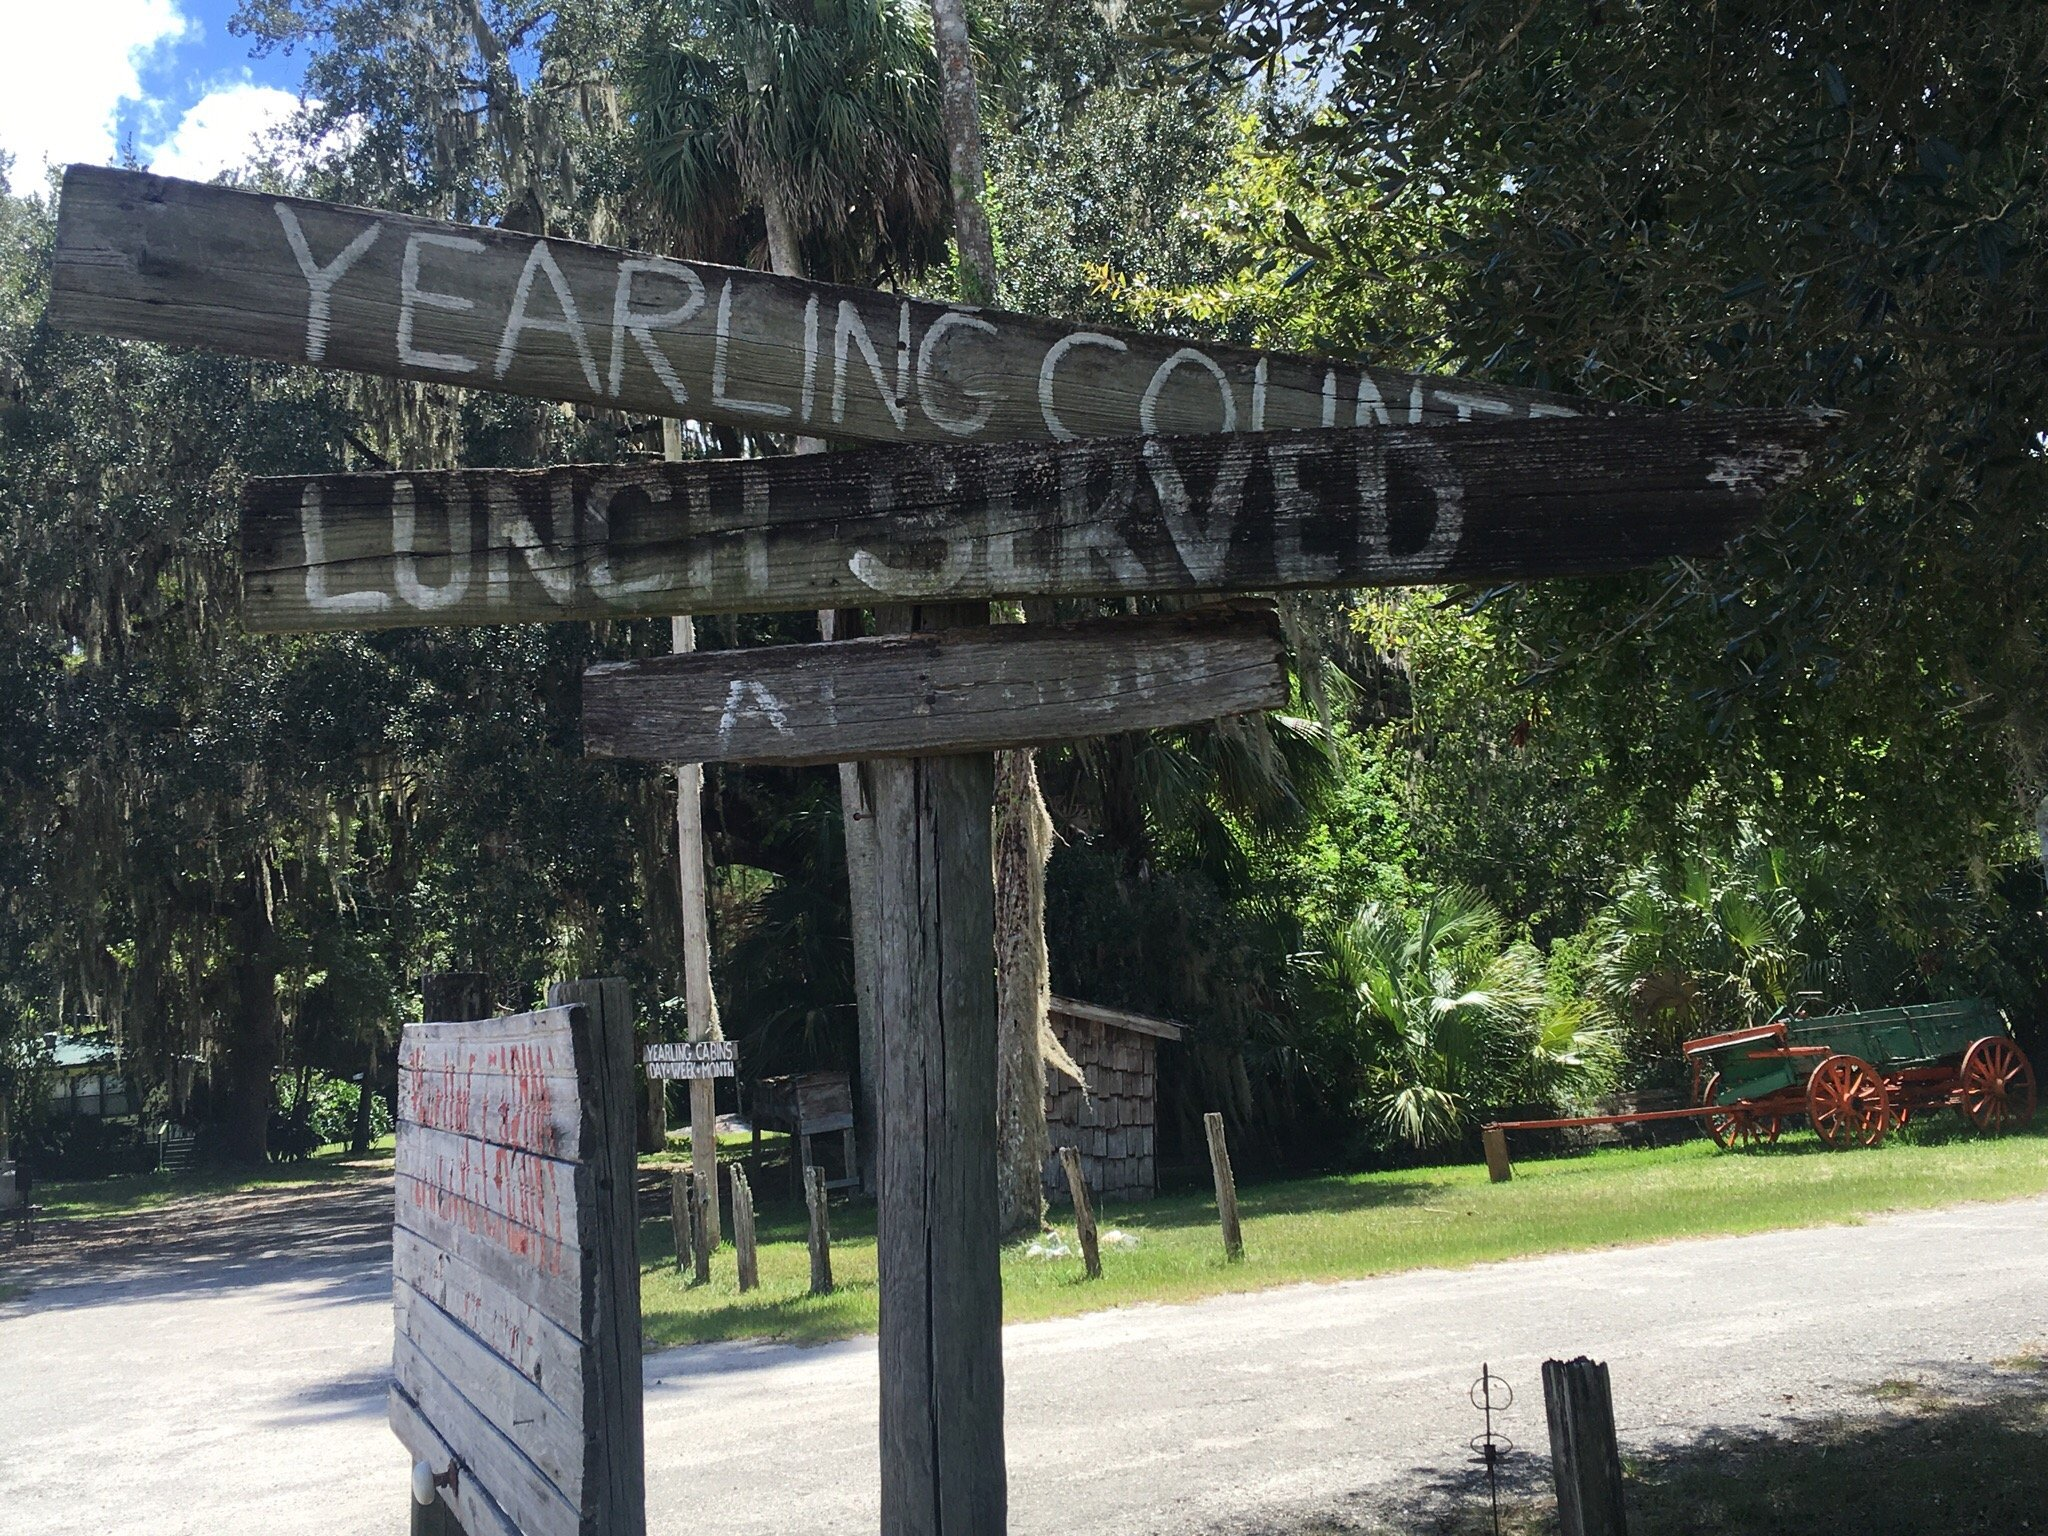 yearling outdoor crossroads signage which indicates lunch is served